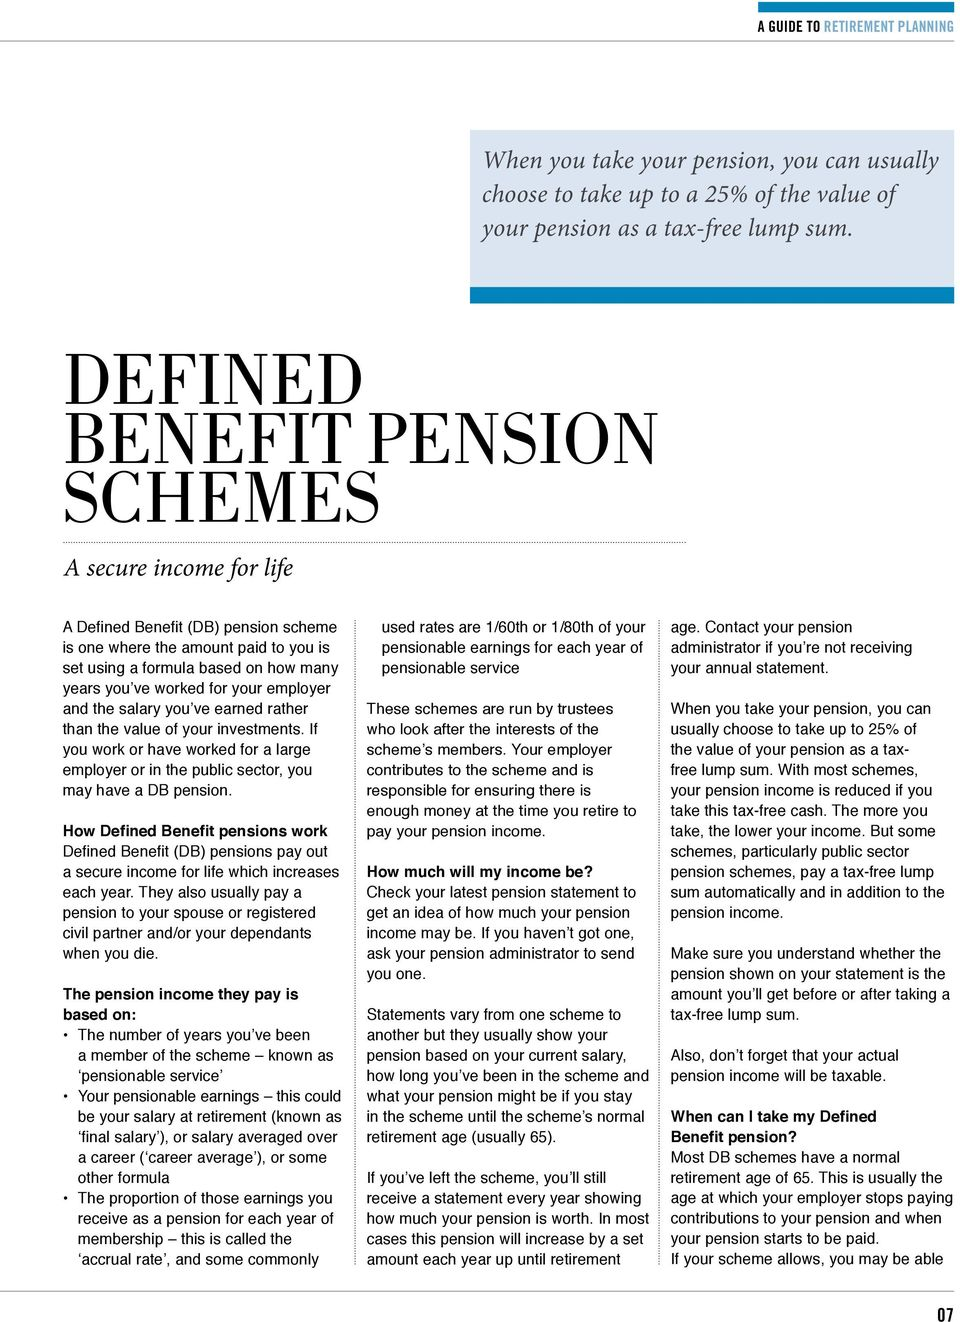 your employer and the salary you ve earned rather than the value of your investments. If you work or have worked for a large employer or in the public sector, you may have a DB pension.